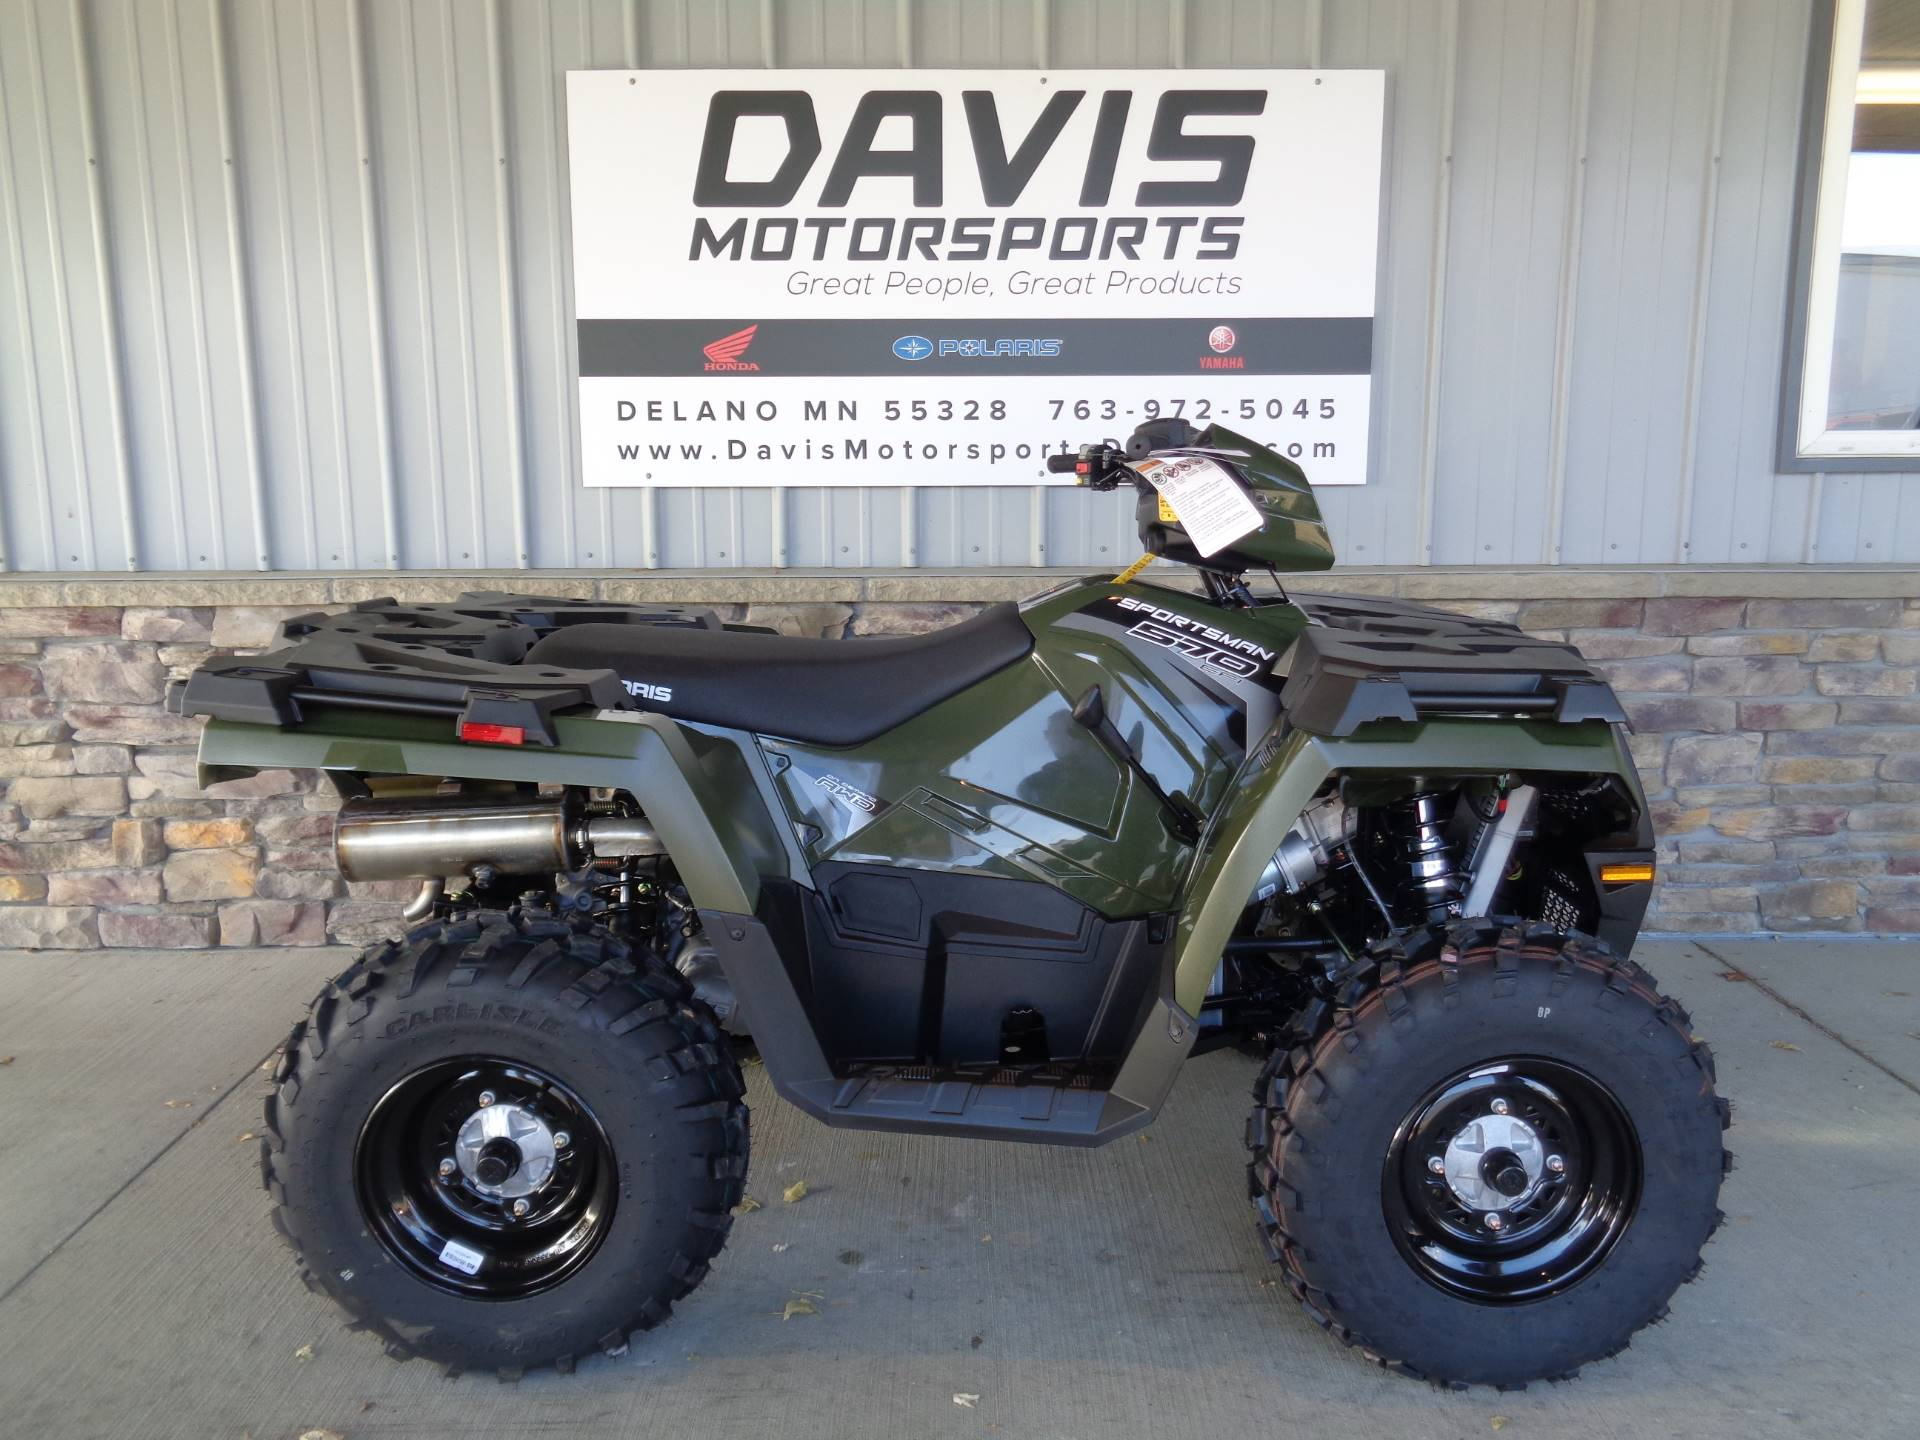 2019 Polaris Sportsman 570 in Delano, Minnesota - Photo 1